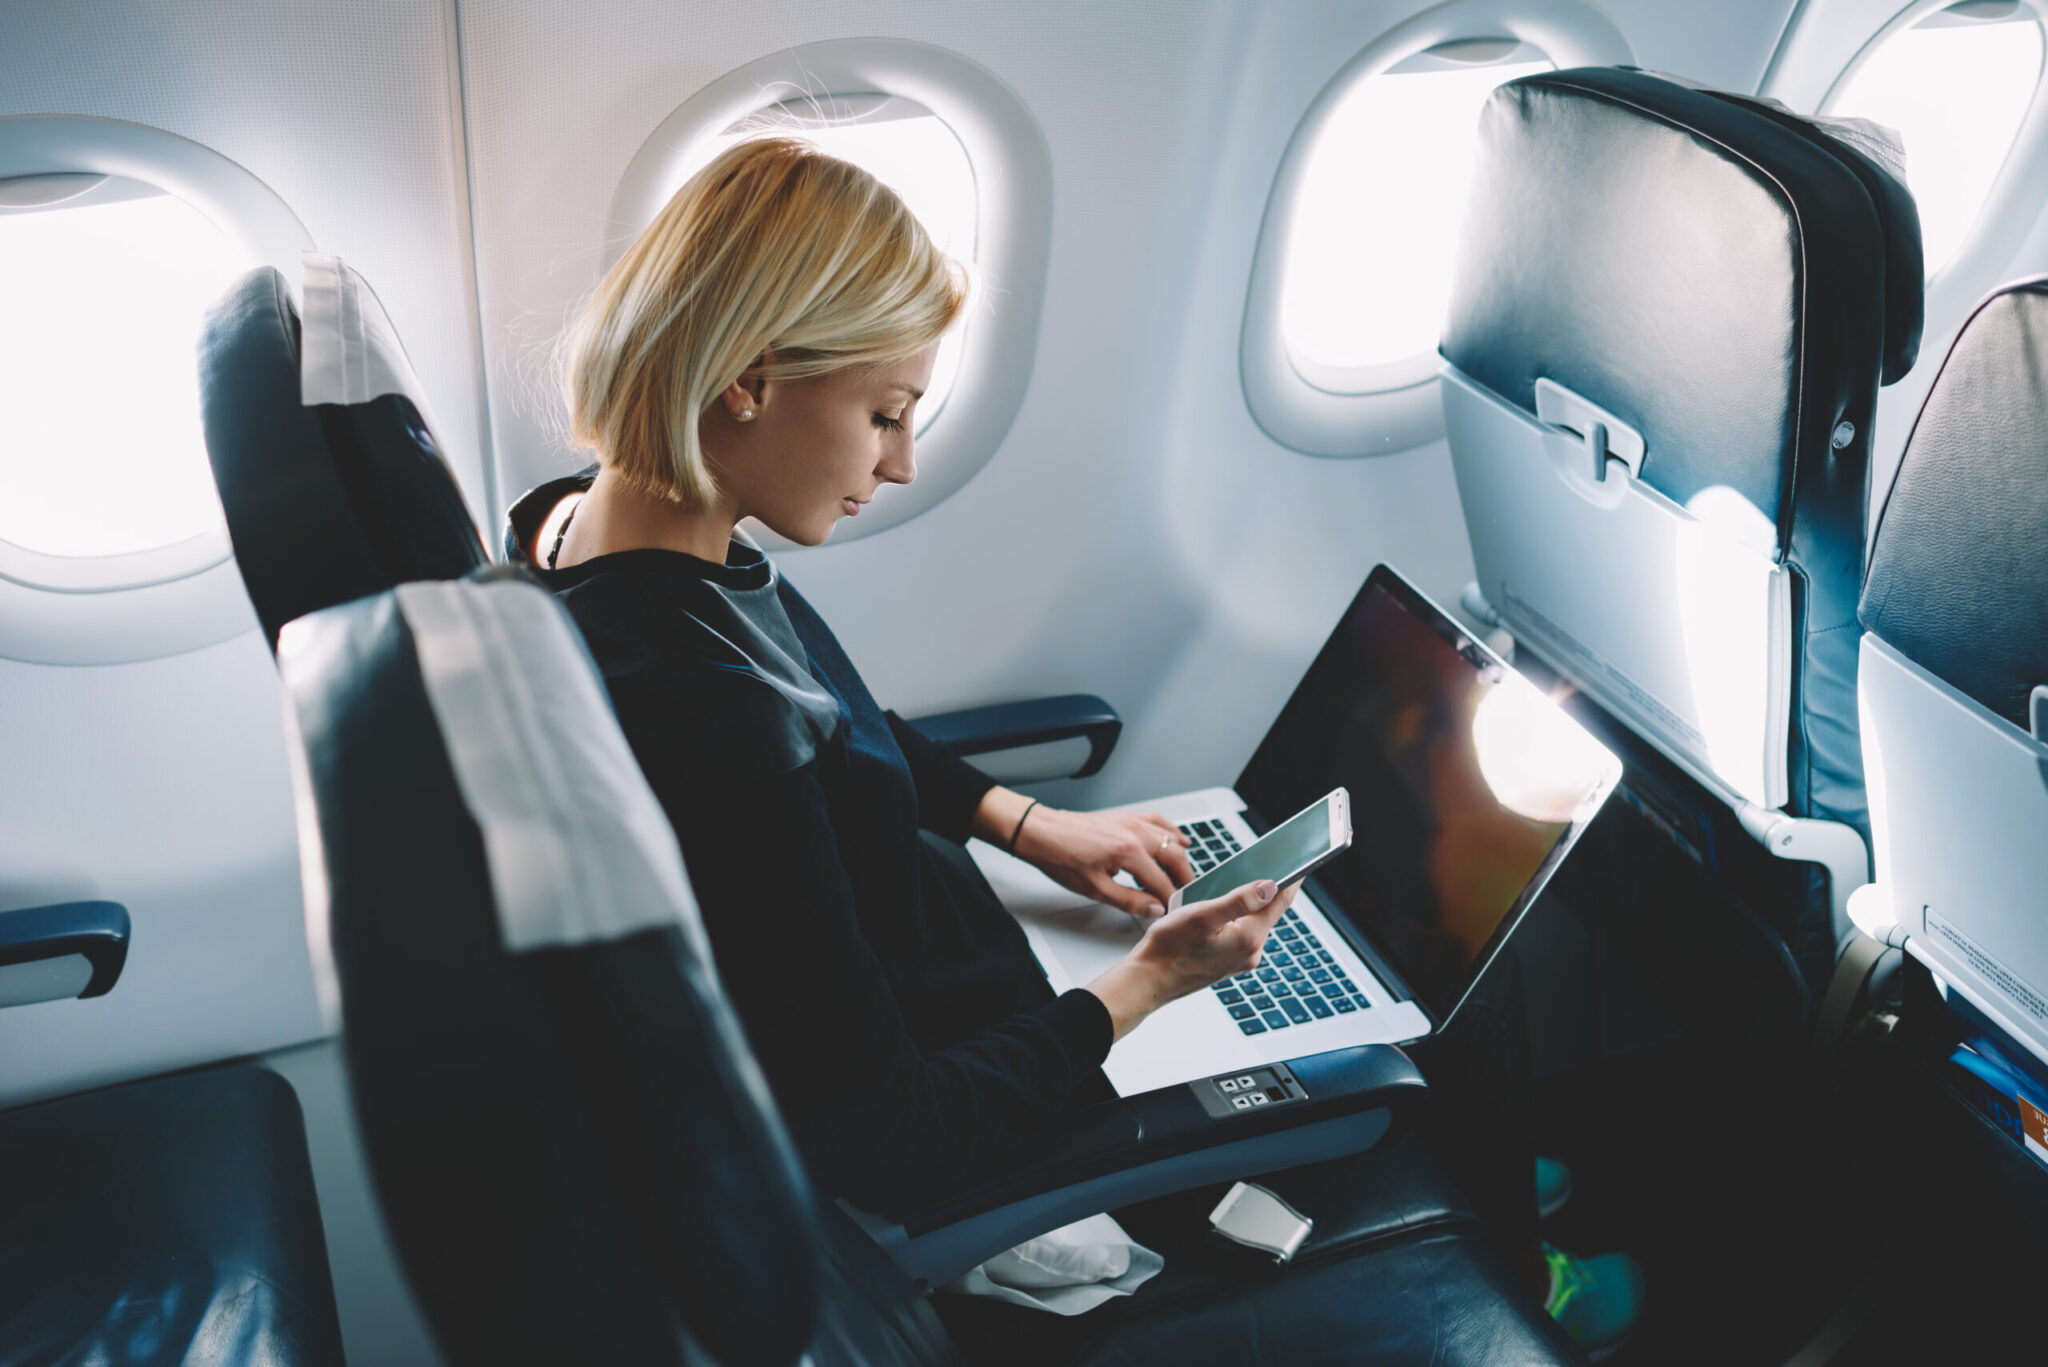 Woman In The Plane